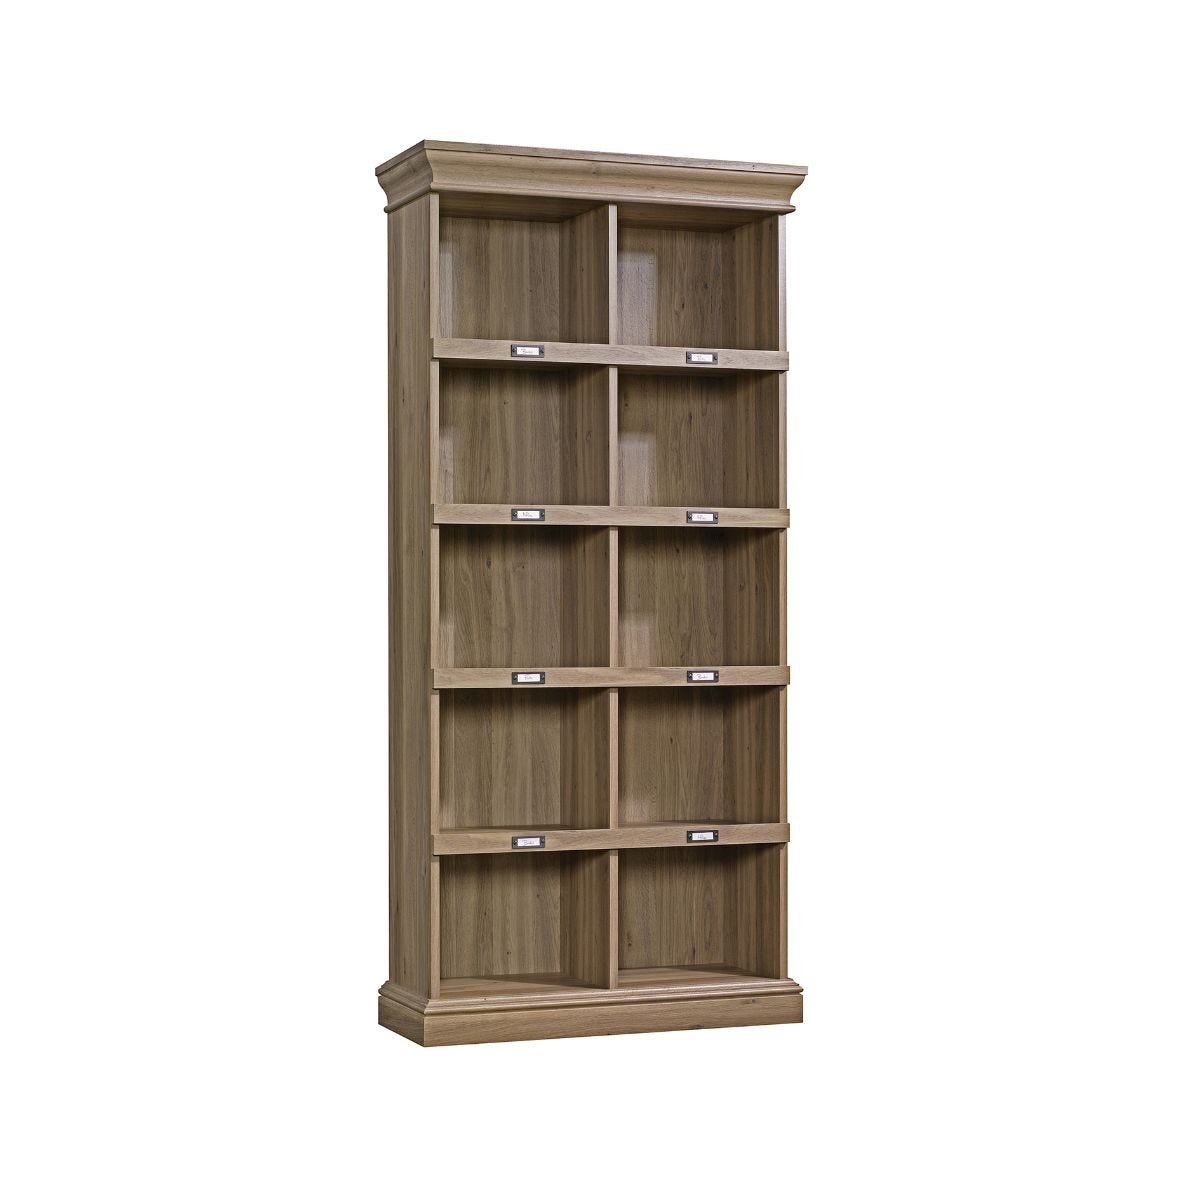 Teknik Office Barrister Home Tall Bookcase Salt Oak Effect